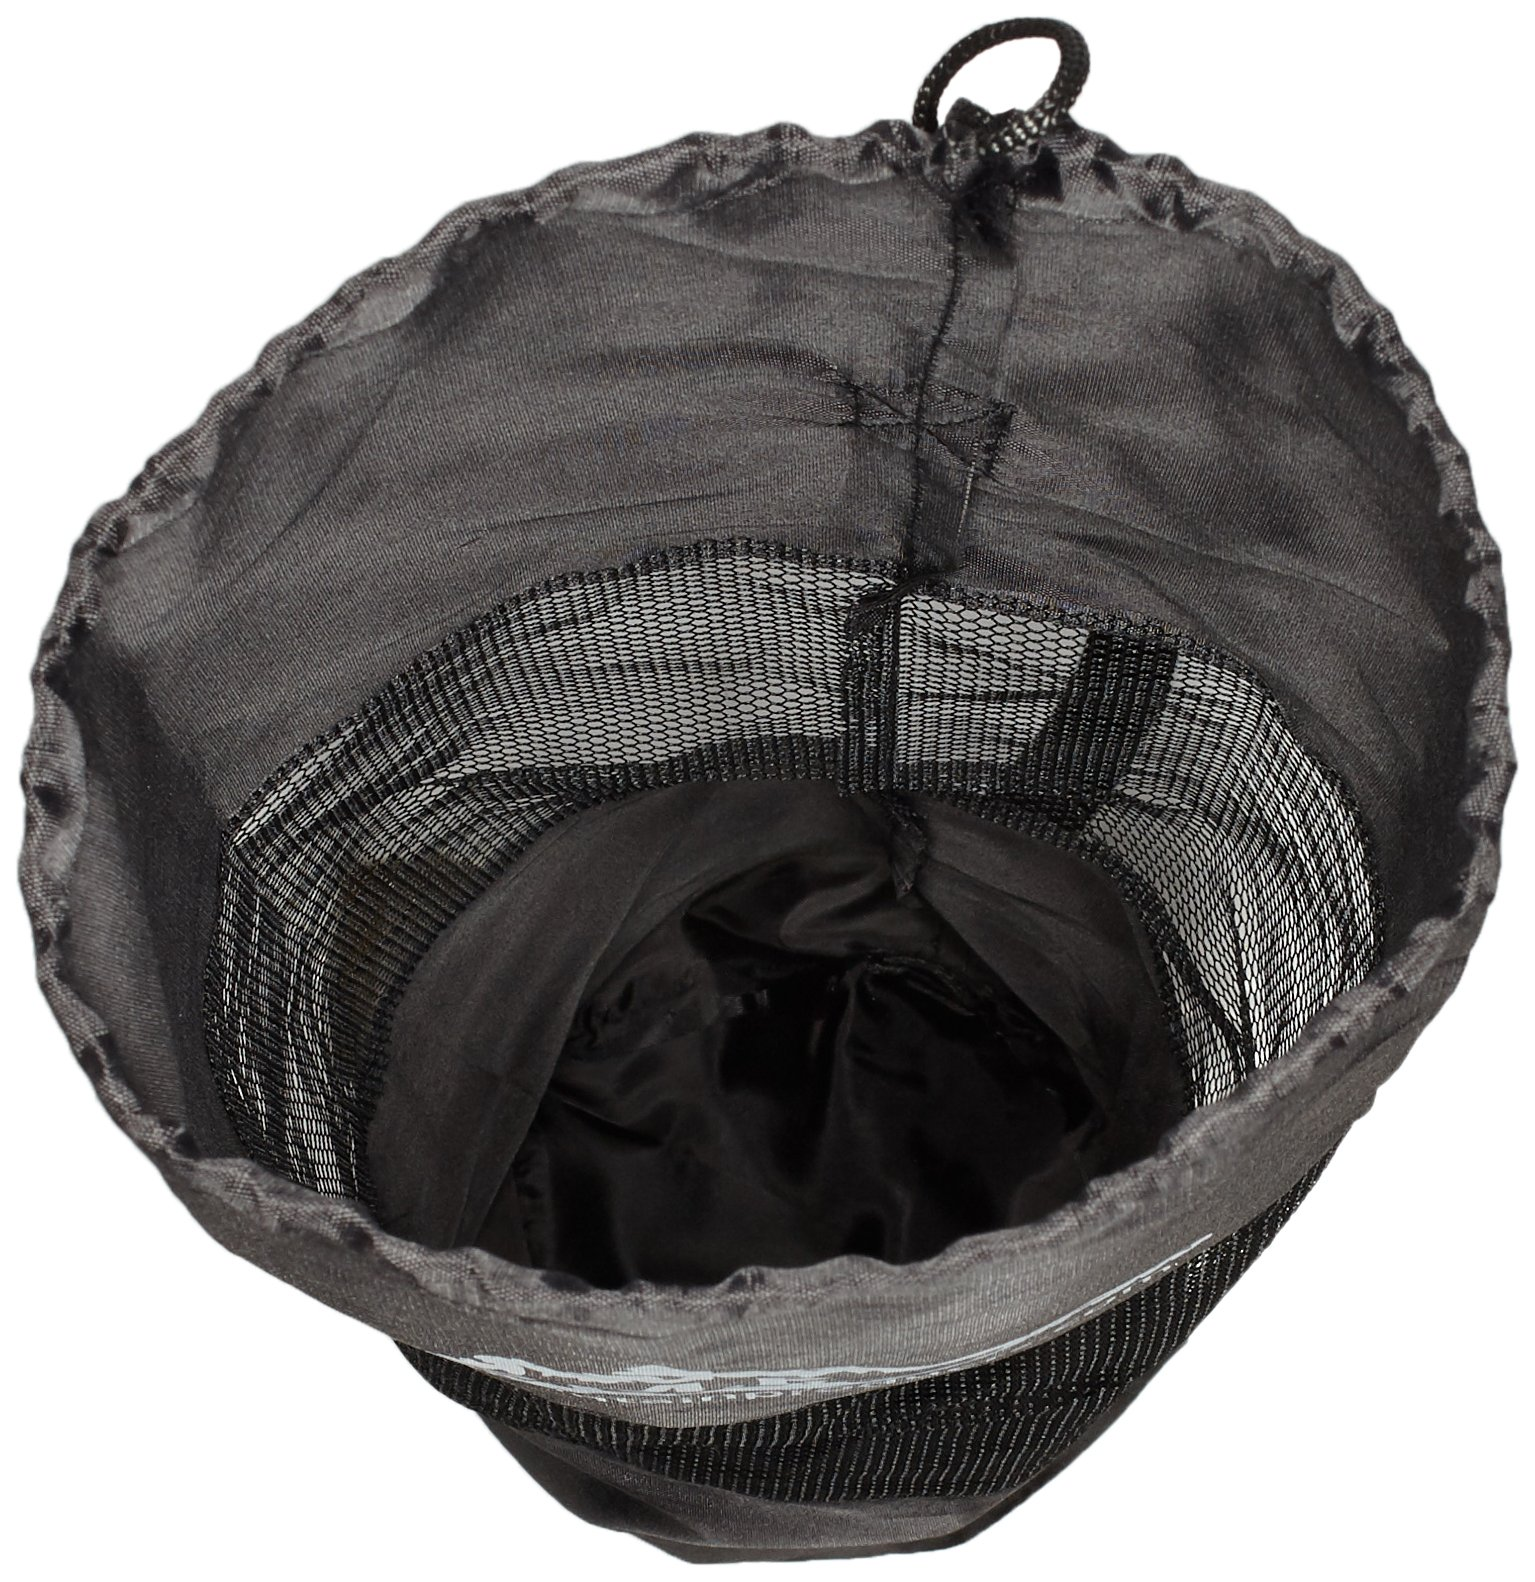 Black Mountain Yoga Mat Bag with Carrying Strap Products by Black Mountain (Image #5)